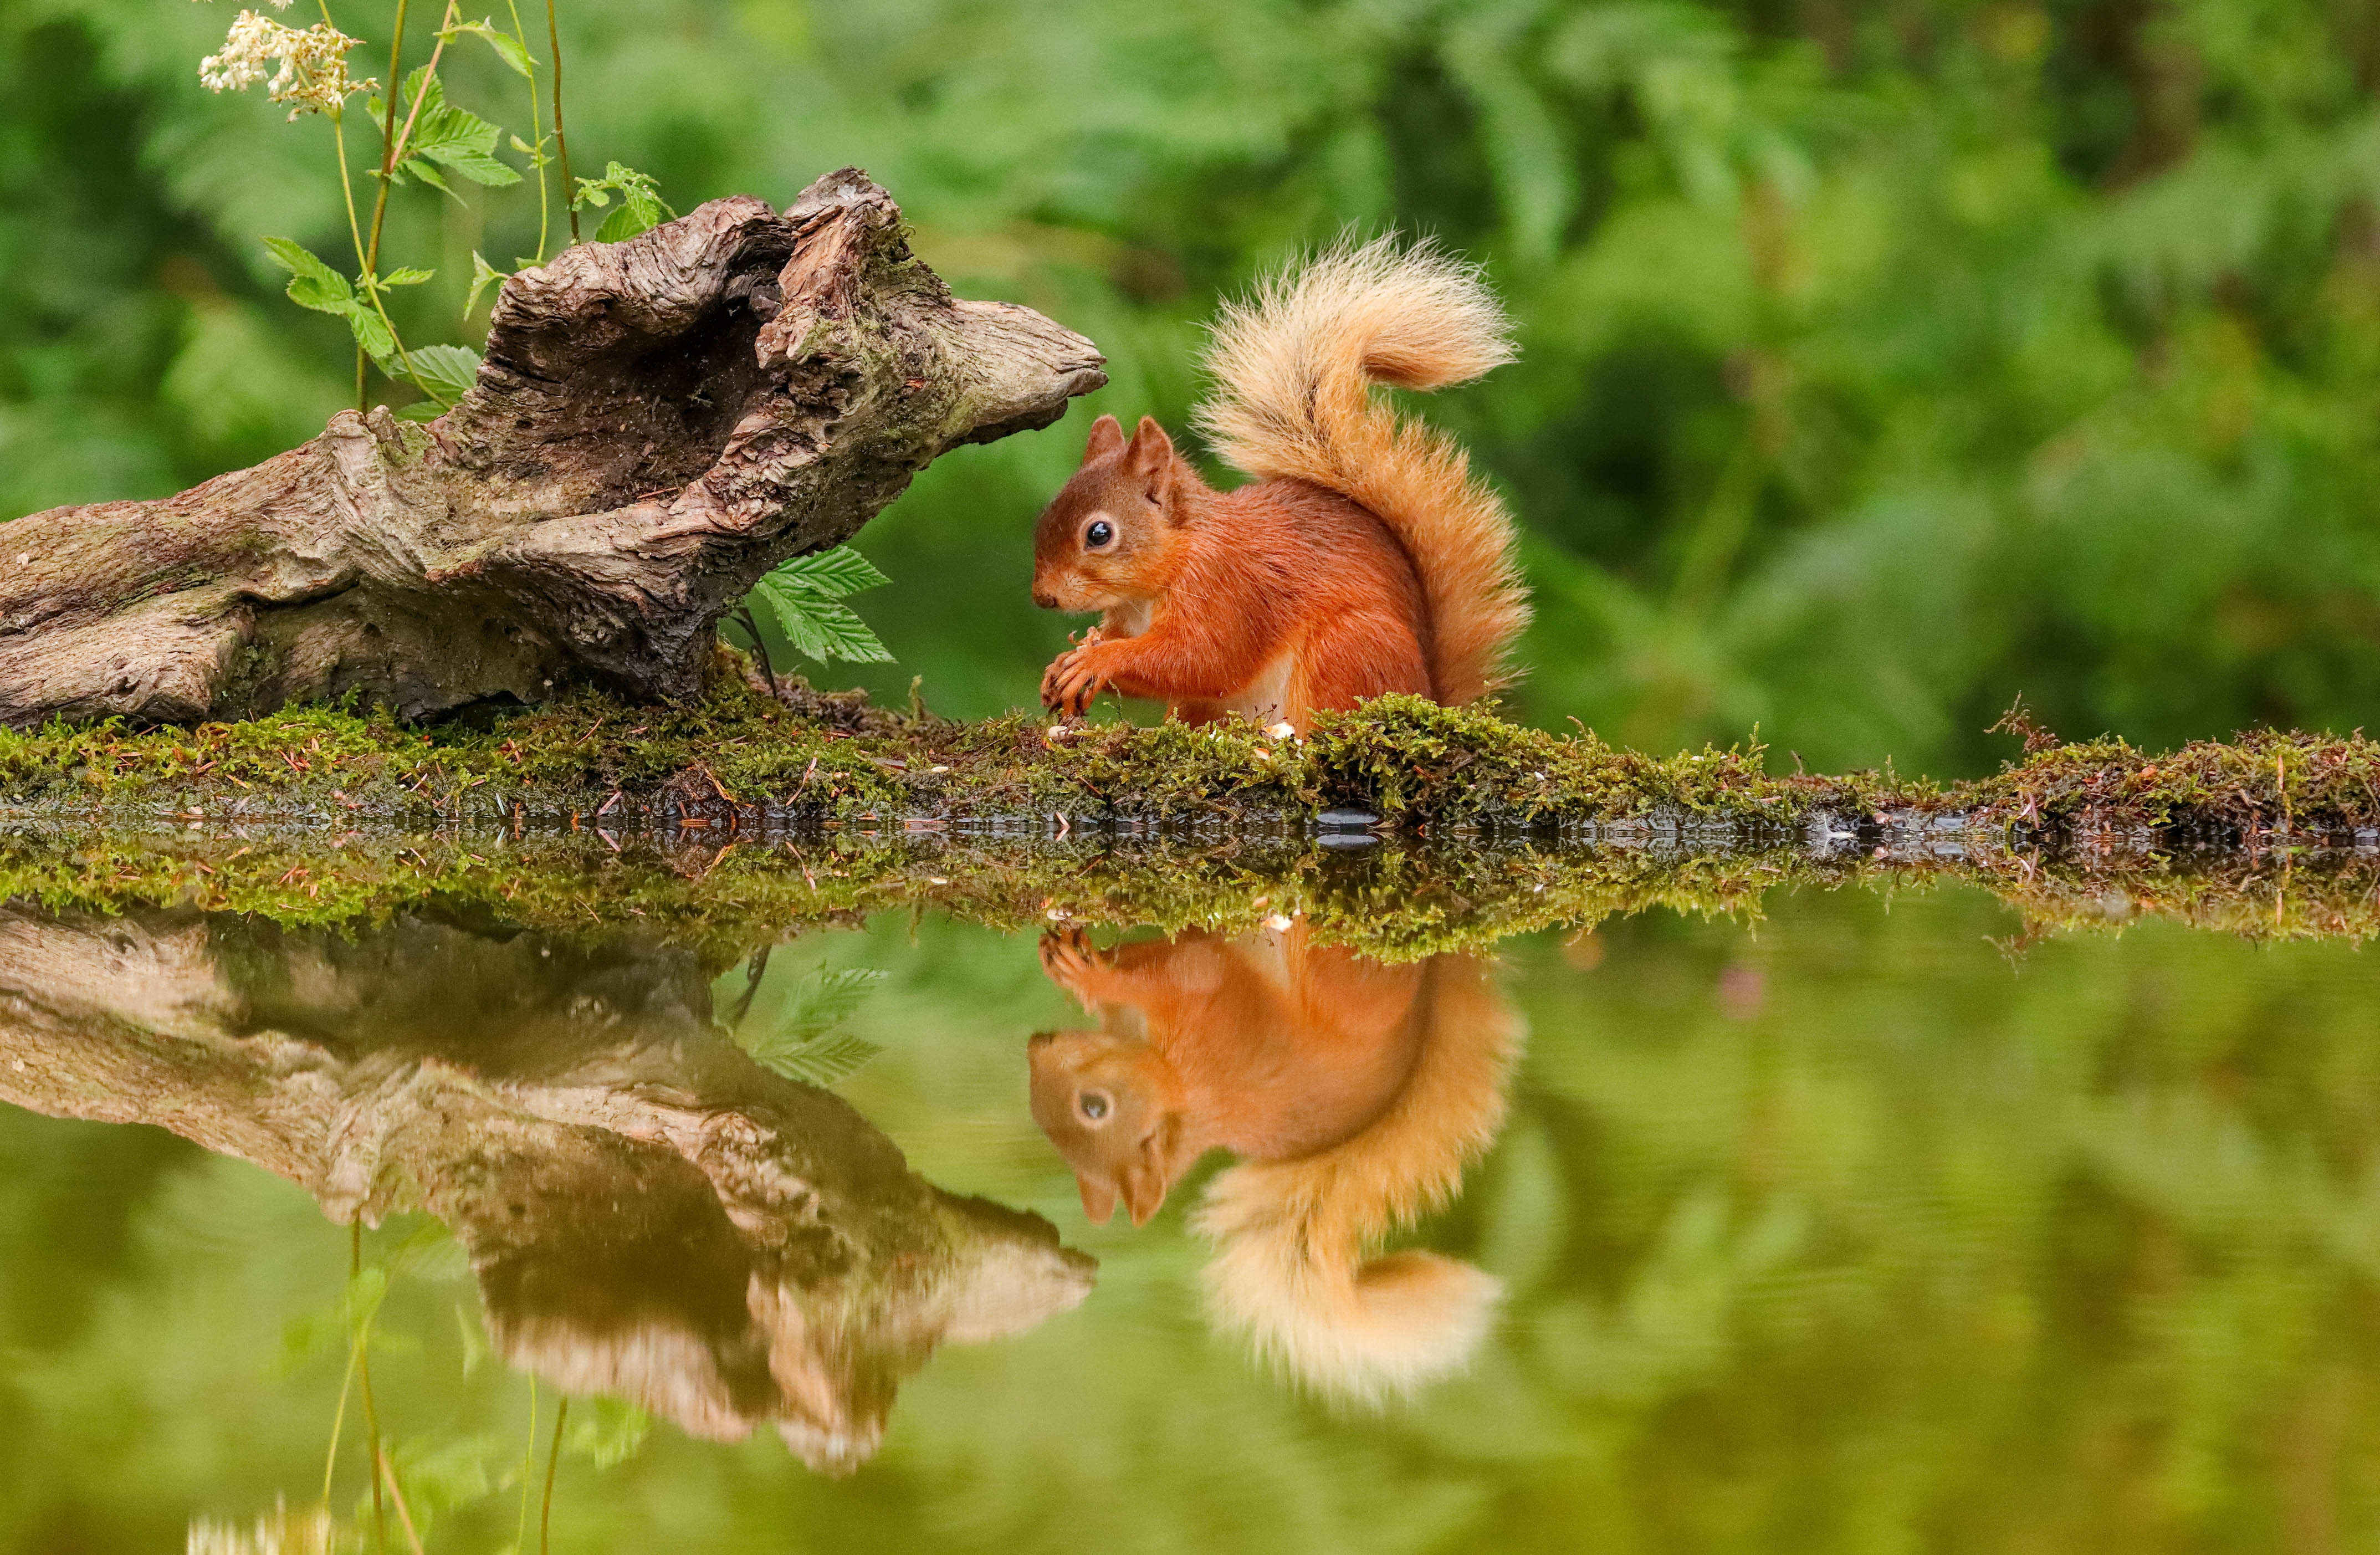 STUNNING IMAGES SHOW BRITISH WILDLIFE CAUGHT IN REFLECTIONS Image